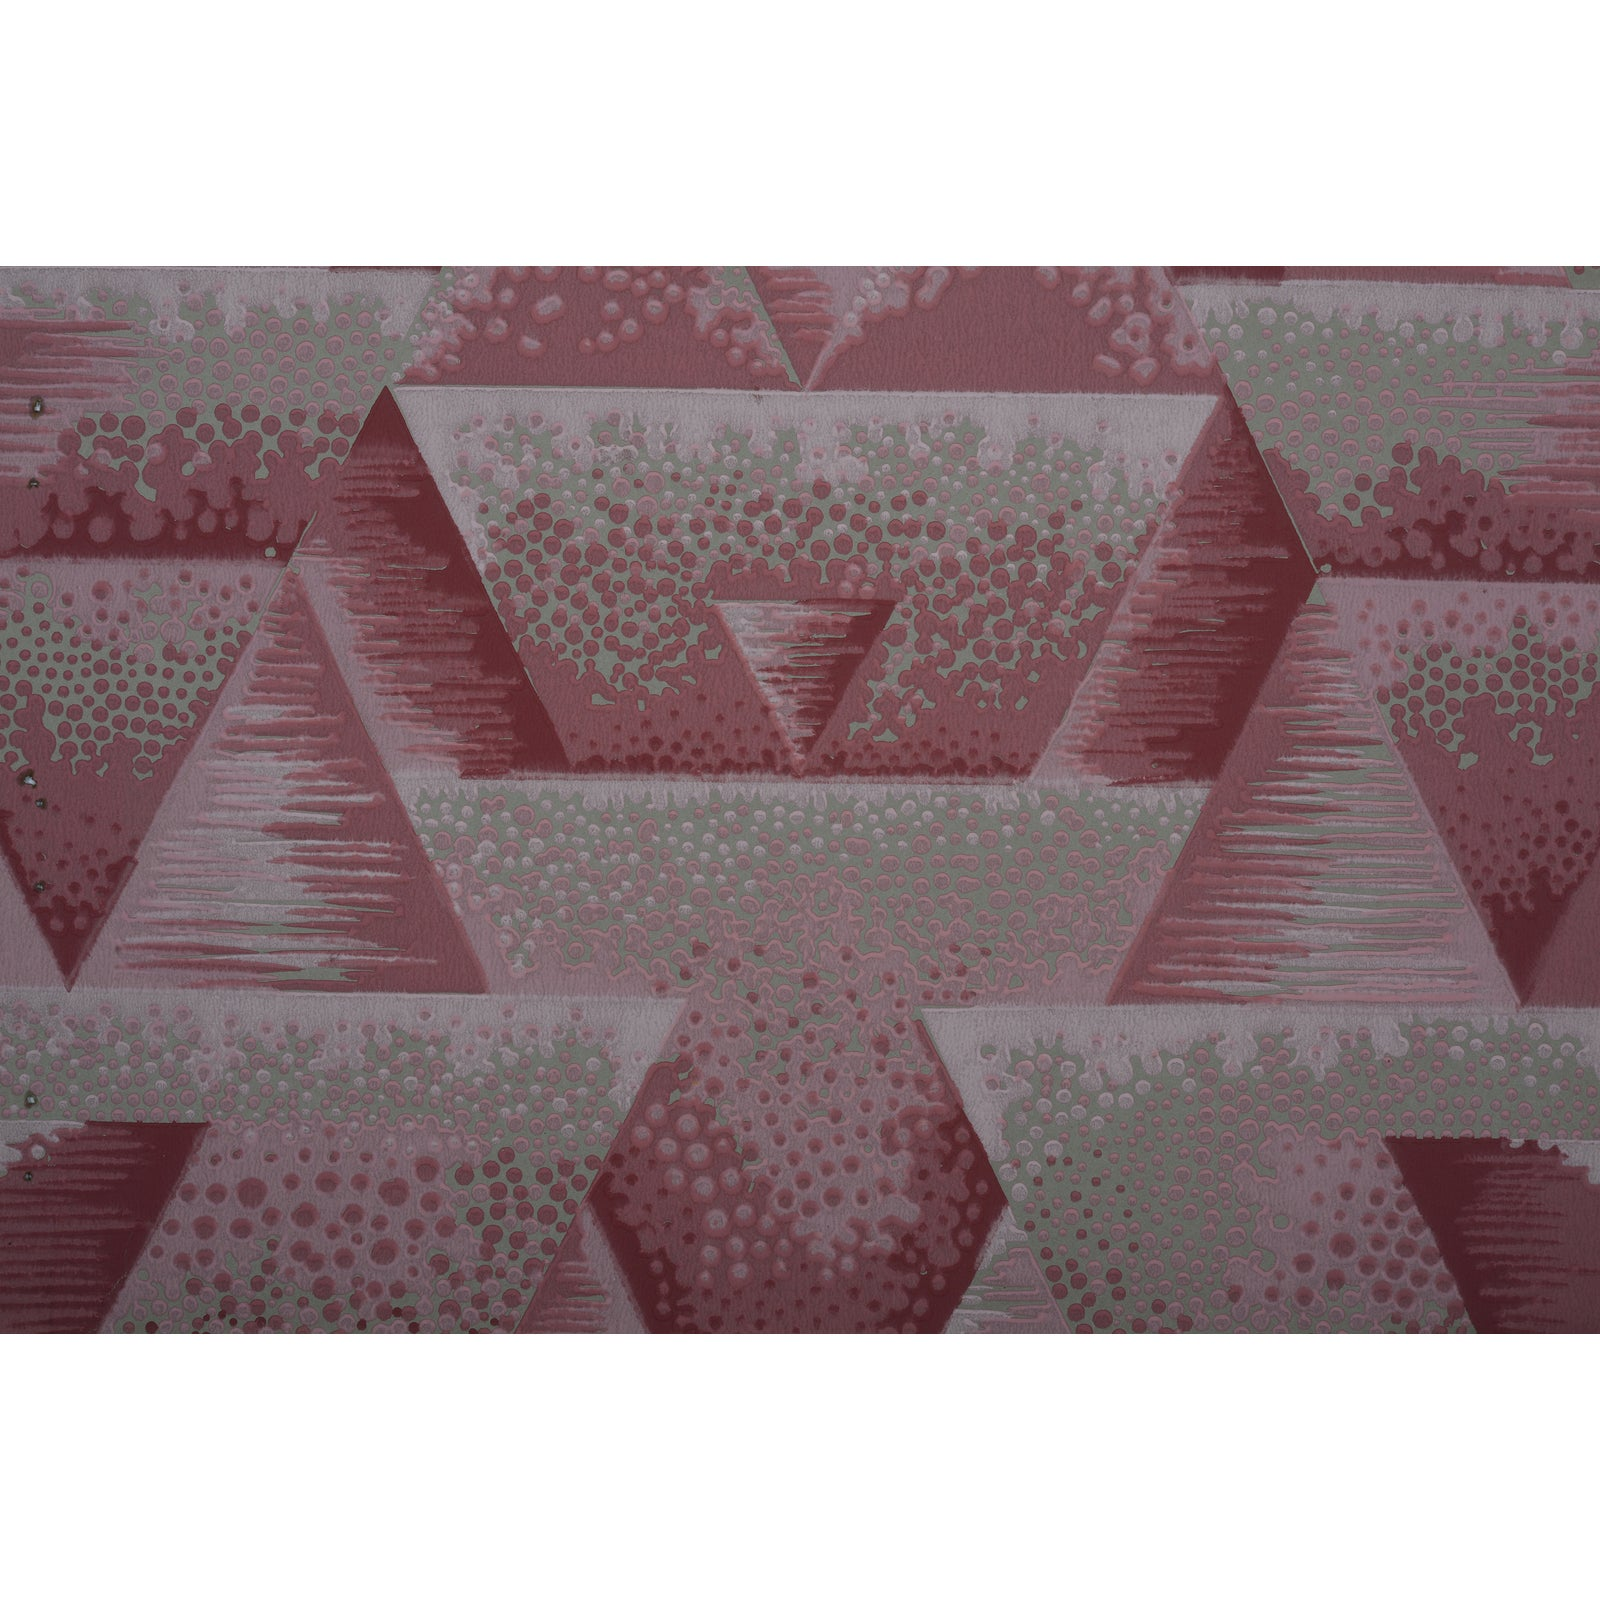 Geometric Art Deco Wallpapetr Sample Art Chairish